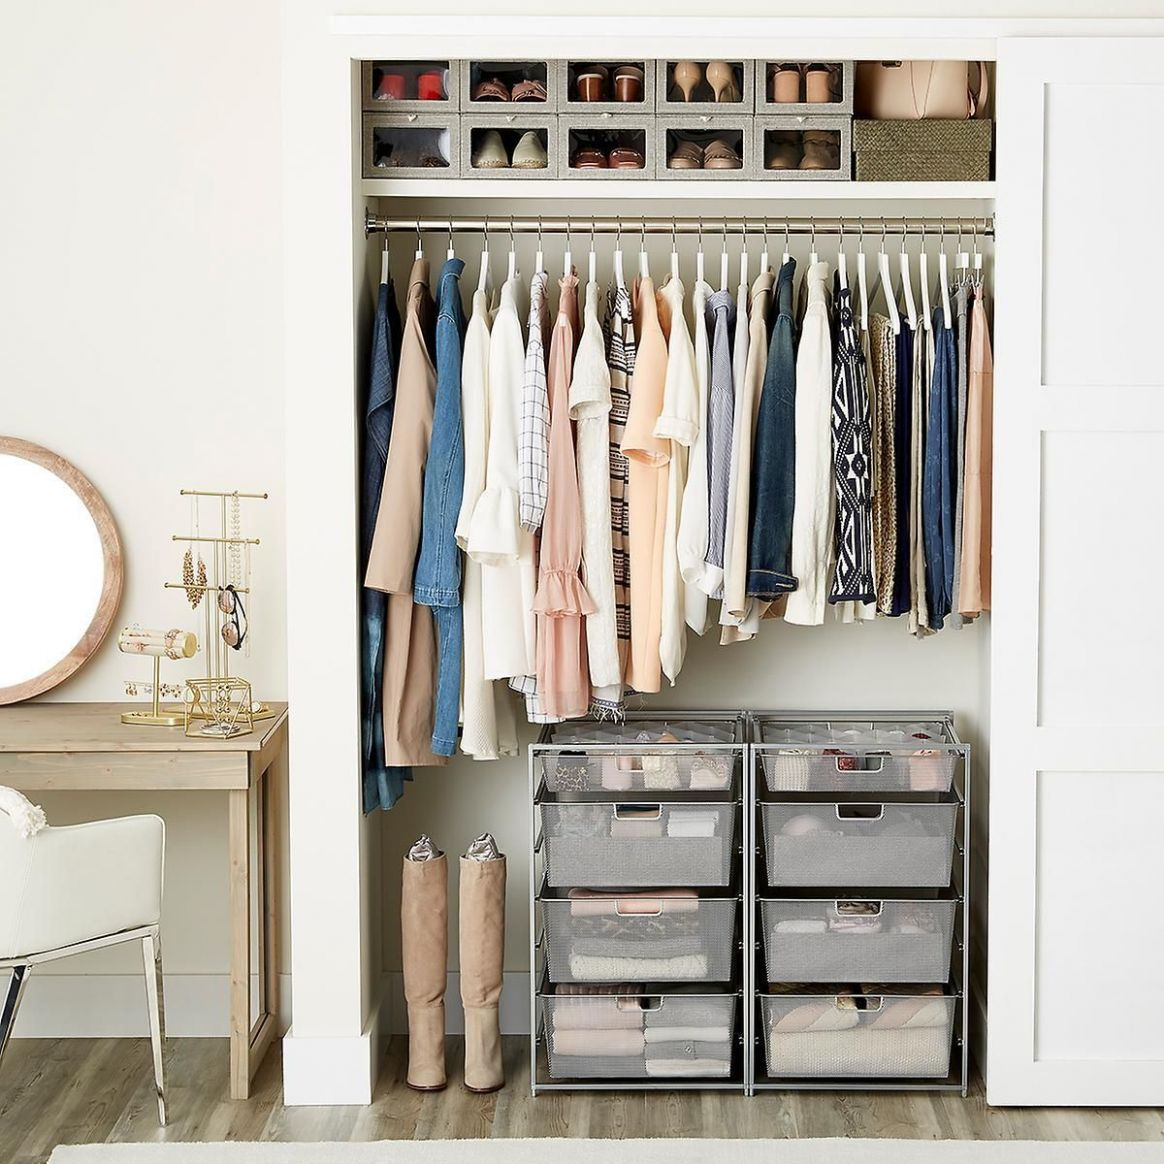 10 Small Apartment Closet Ideas that Save Space with Innovative ..